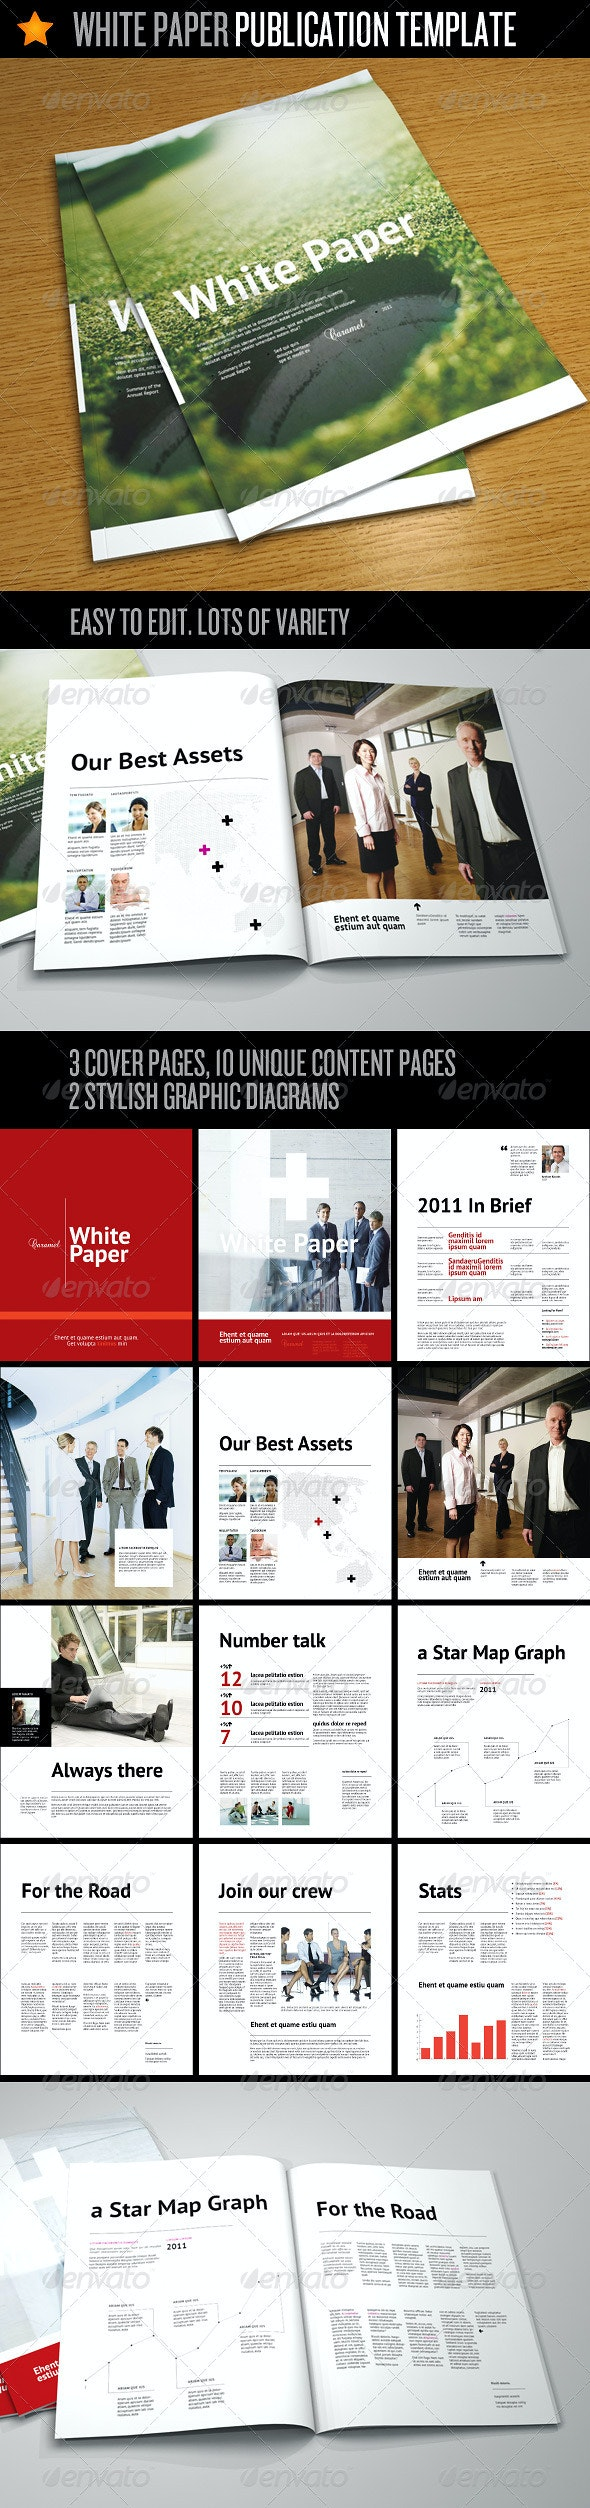 White Paper - Corporate Publication Template - Informational Brochures